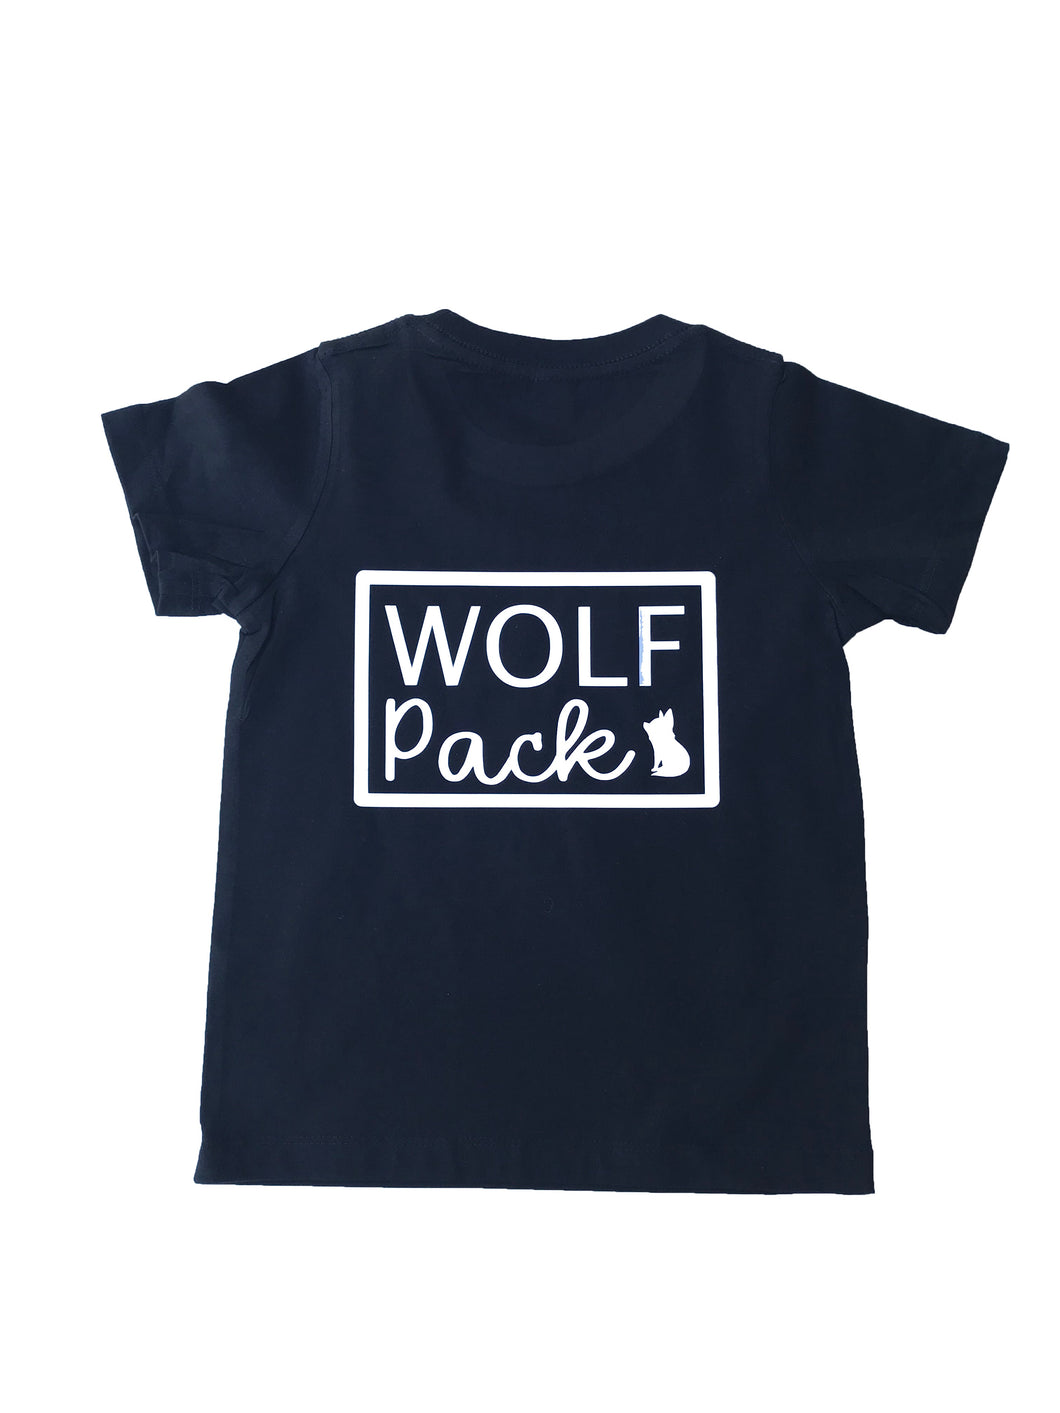 Wolf Pack Tee - personalised tees for toddlers australia